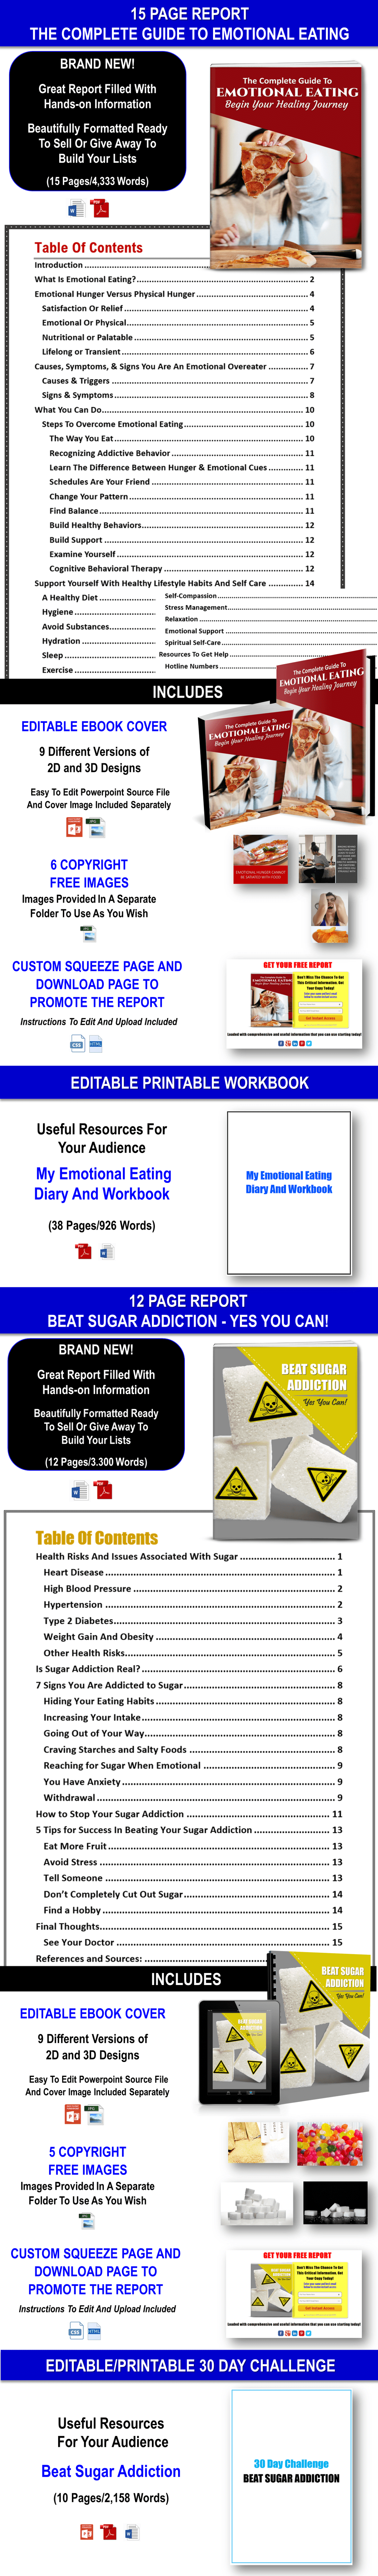 Food Addiction and Emotional Overeating Content With PLR Rights